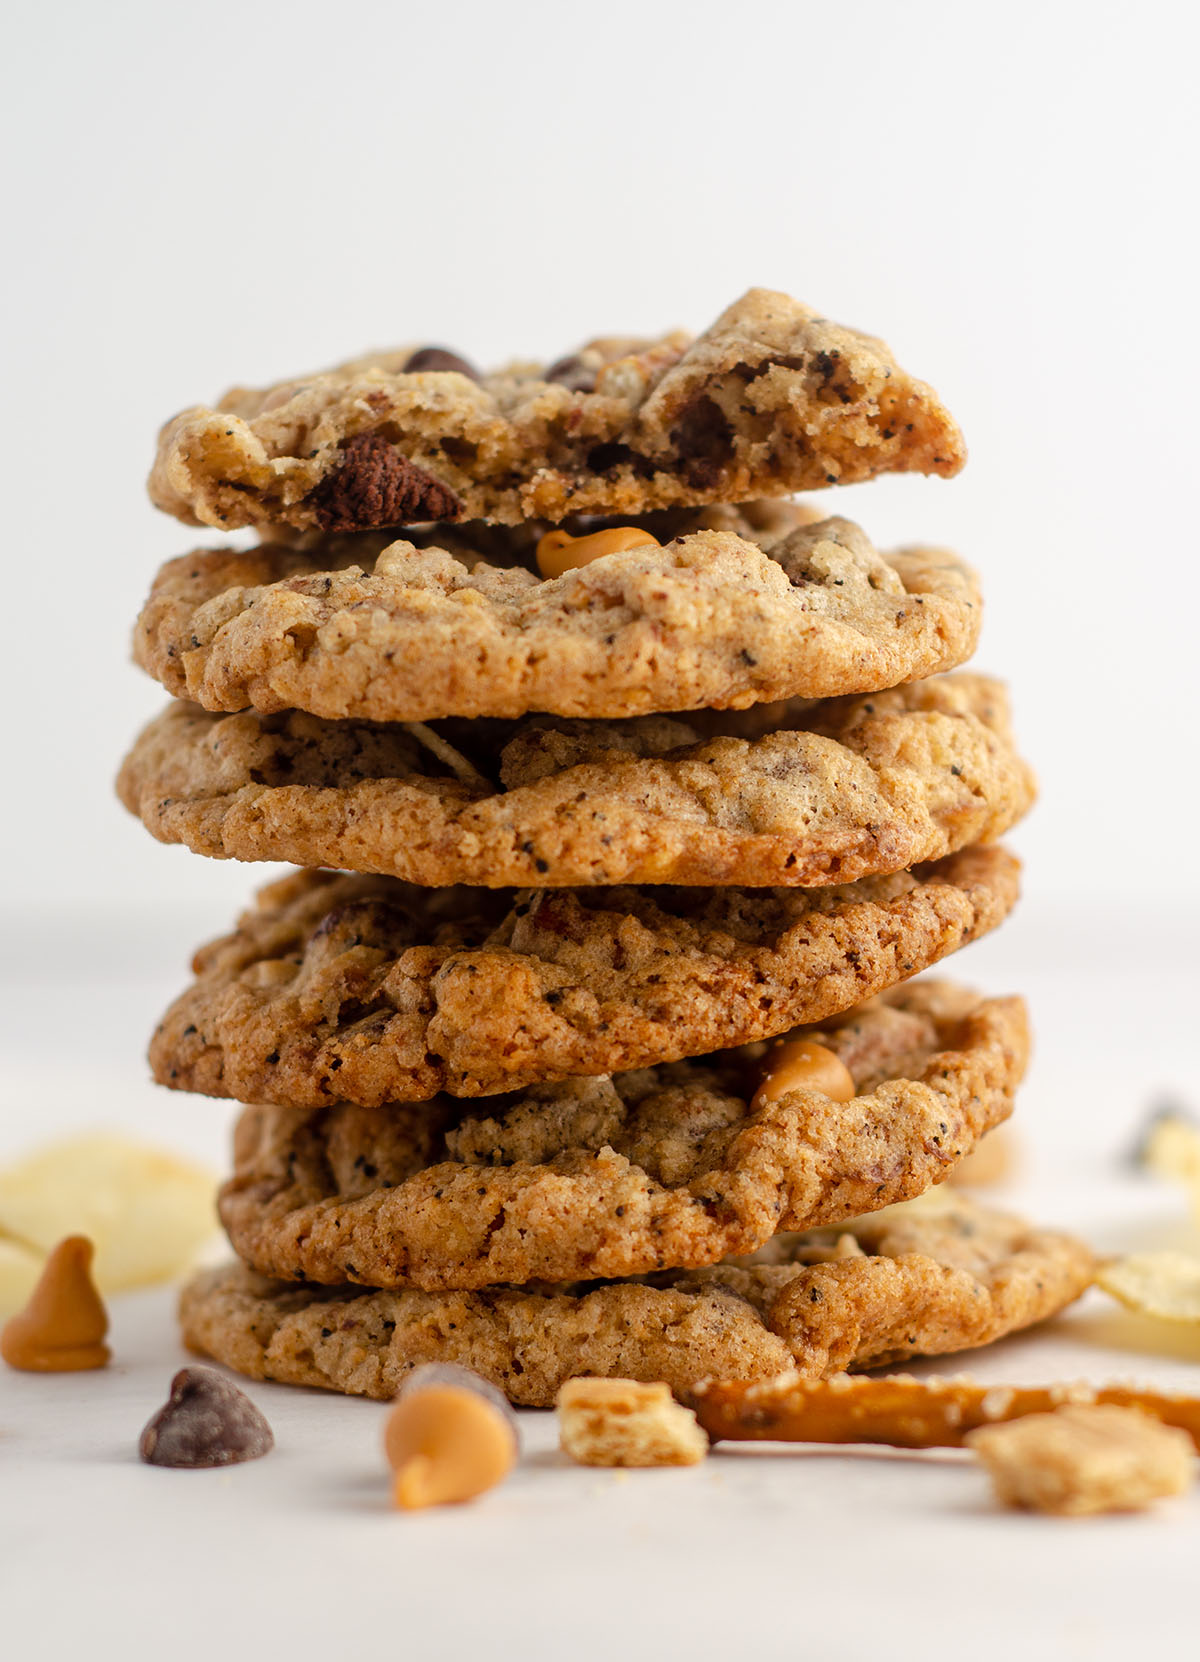 stack of compost cookies scattered with chips, pretzel pieces, chocolate chips, and butterscotch chips